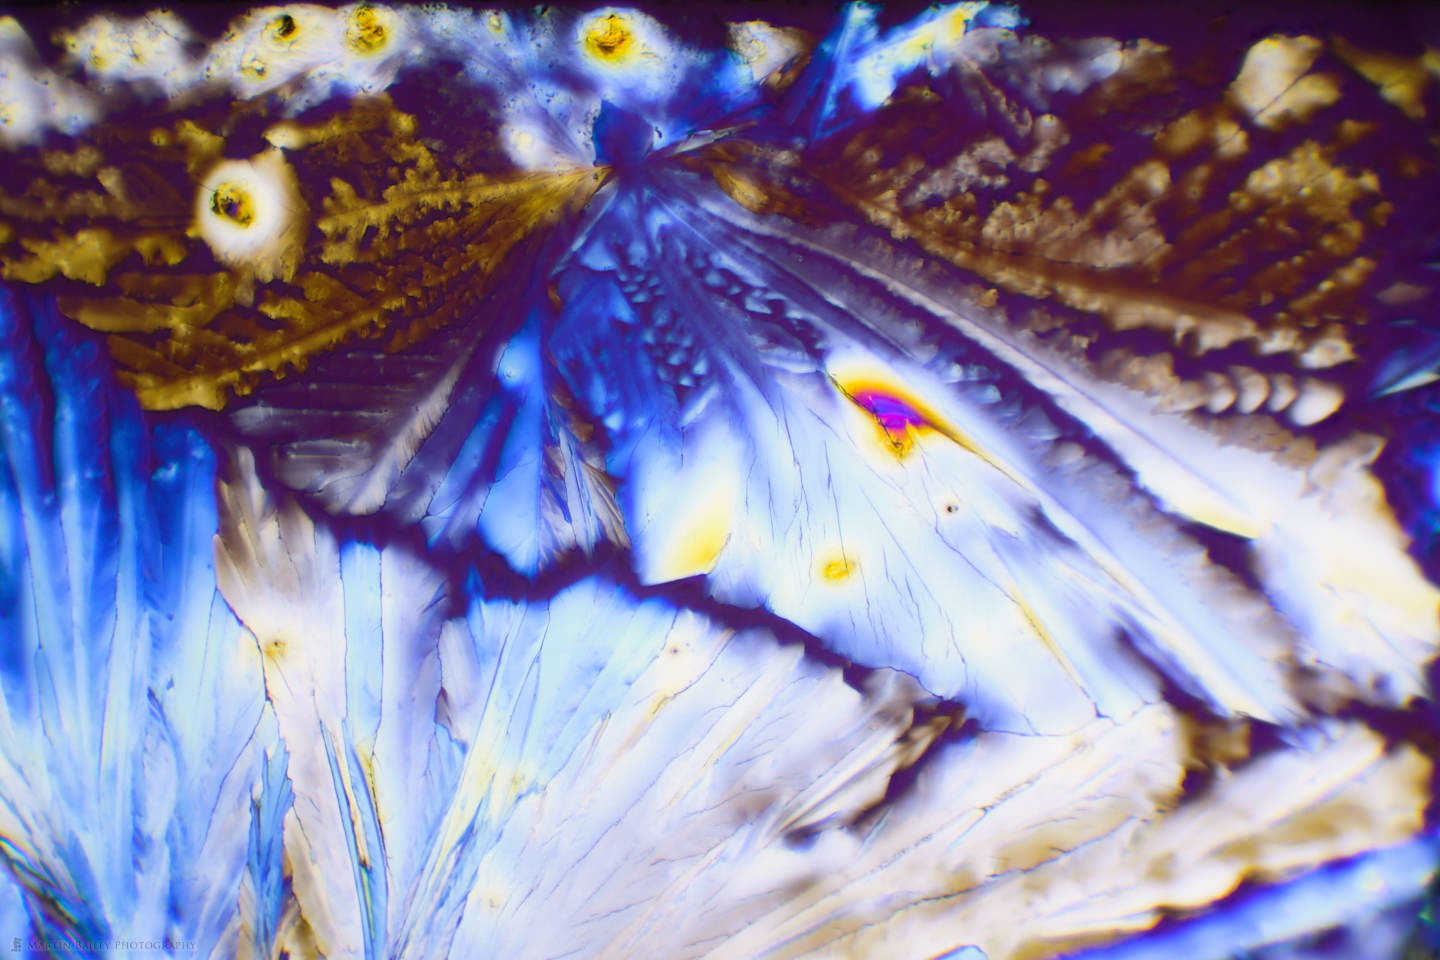 Feathered Crystals (Citric Acid Crystals 100X 14 Frames)